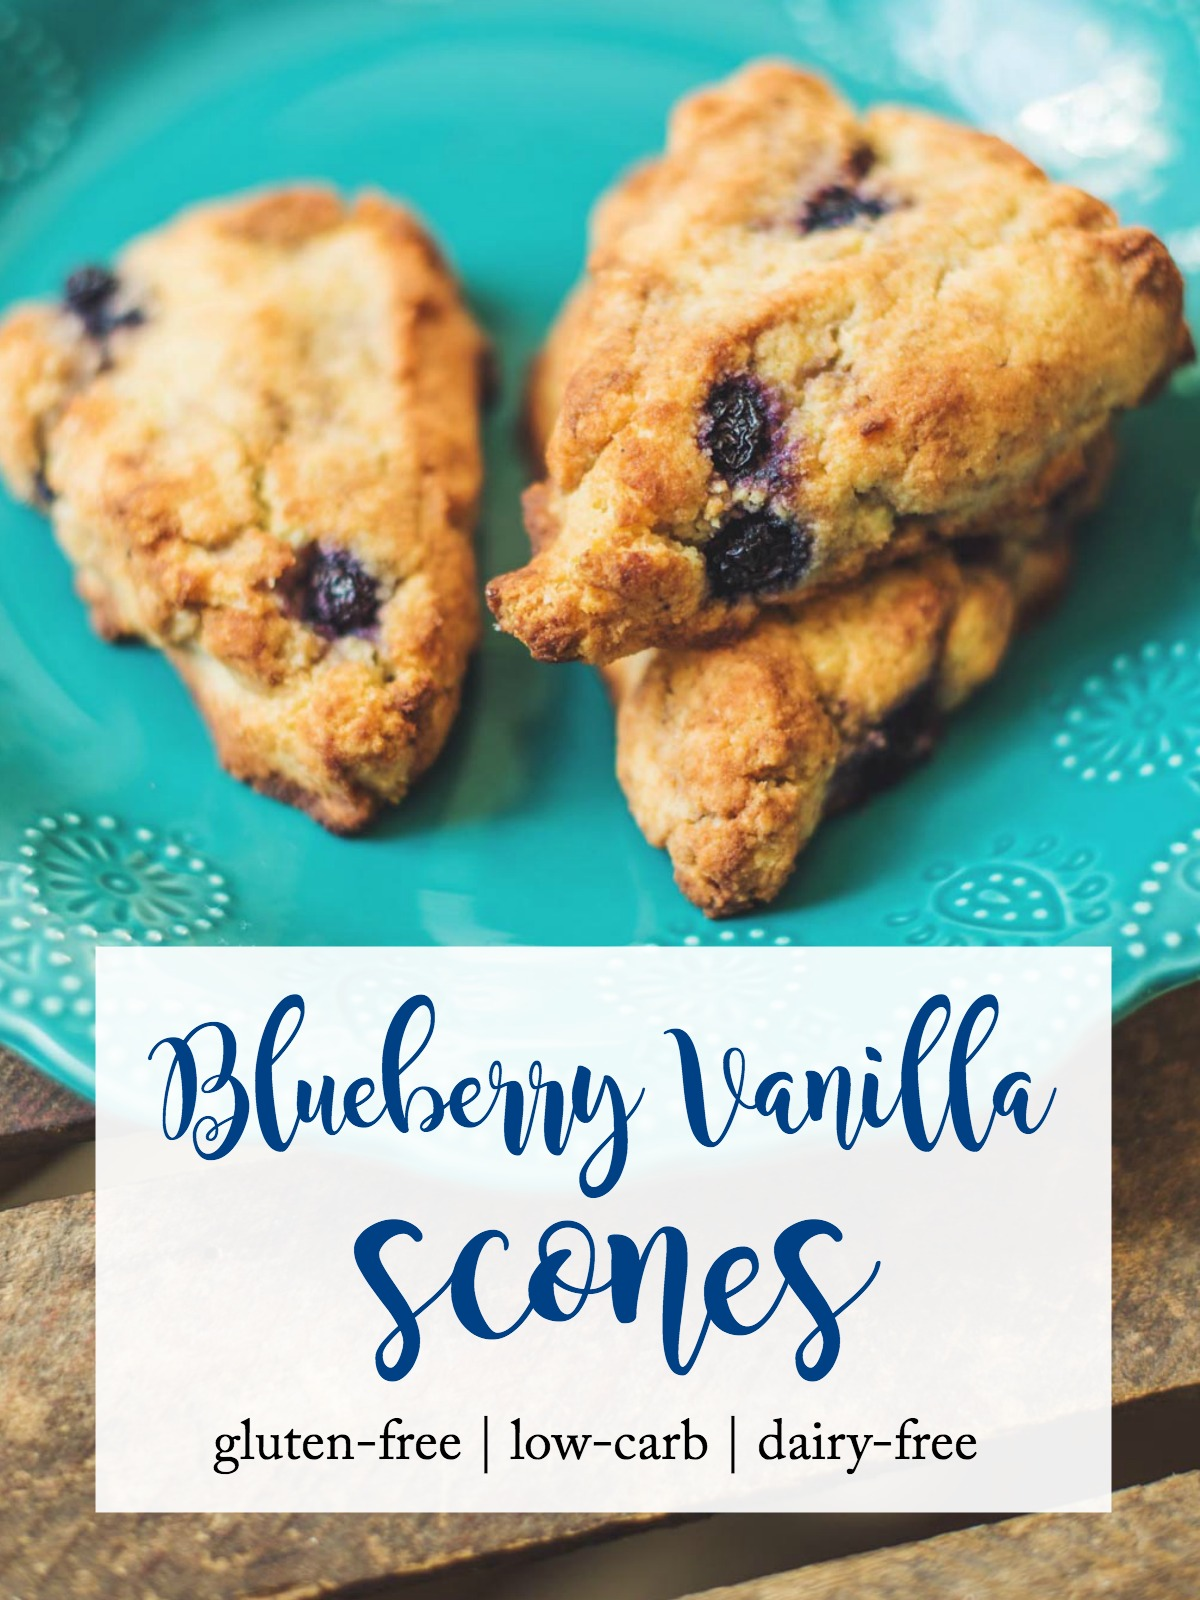 Gluten-free blueberry vanilla scones on plate. Low-carb, Trim Healthy Mama